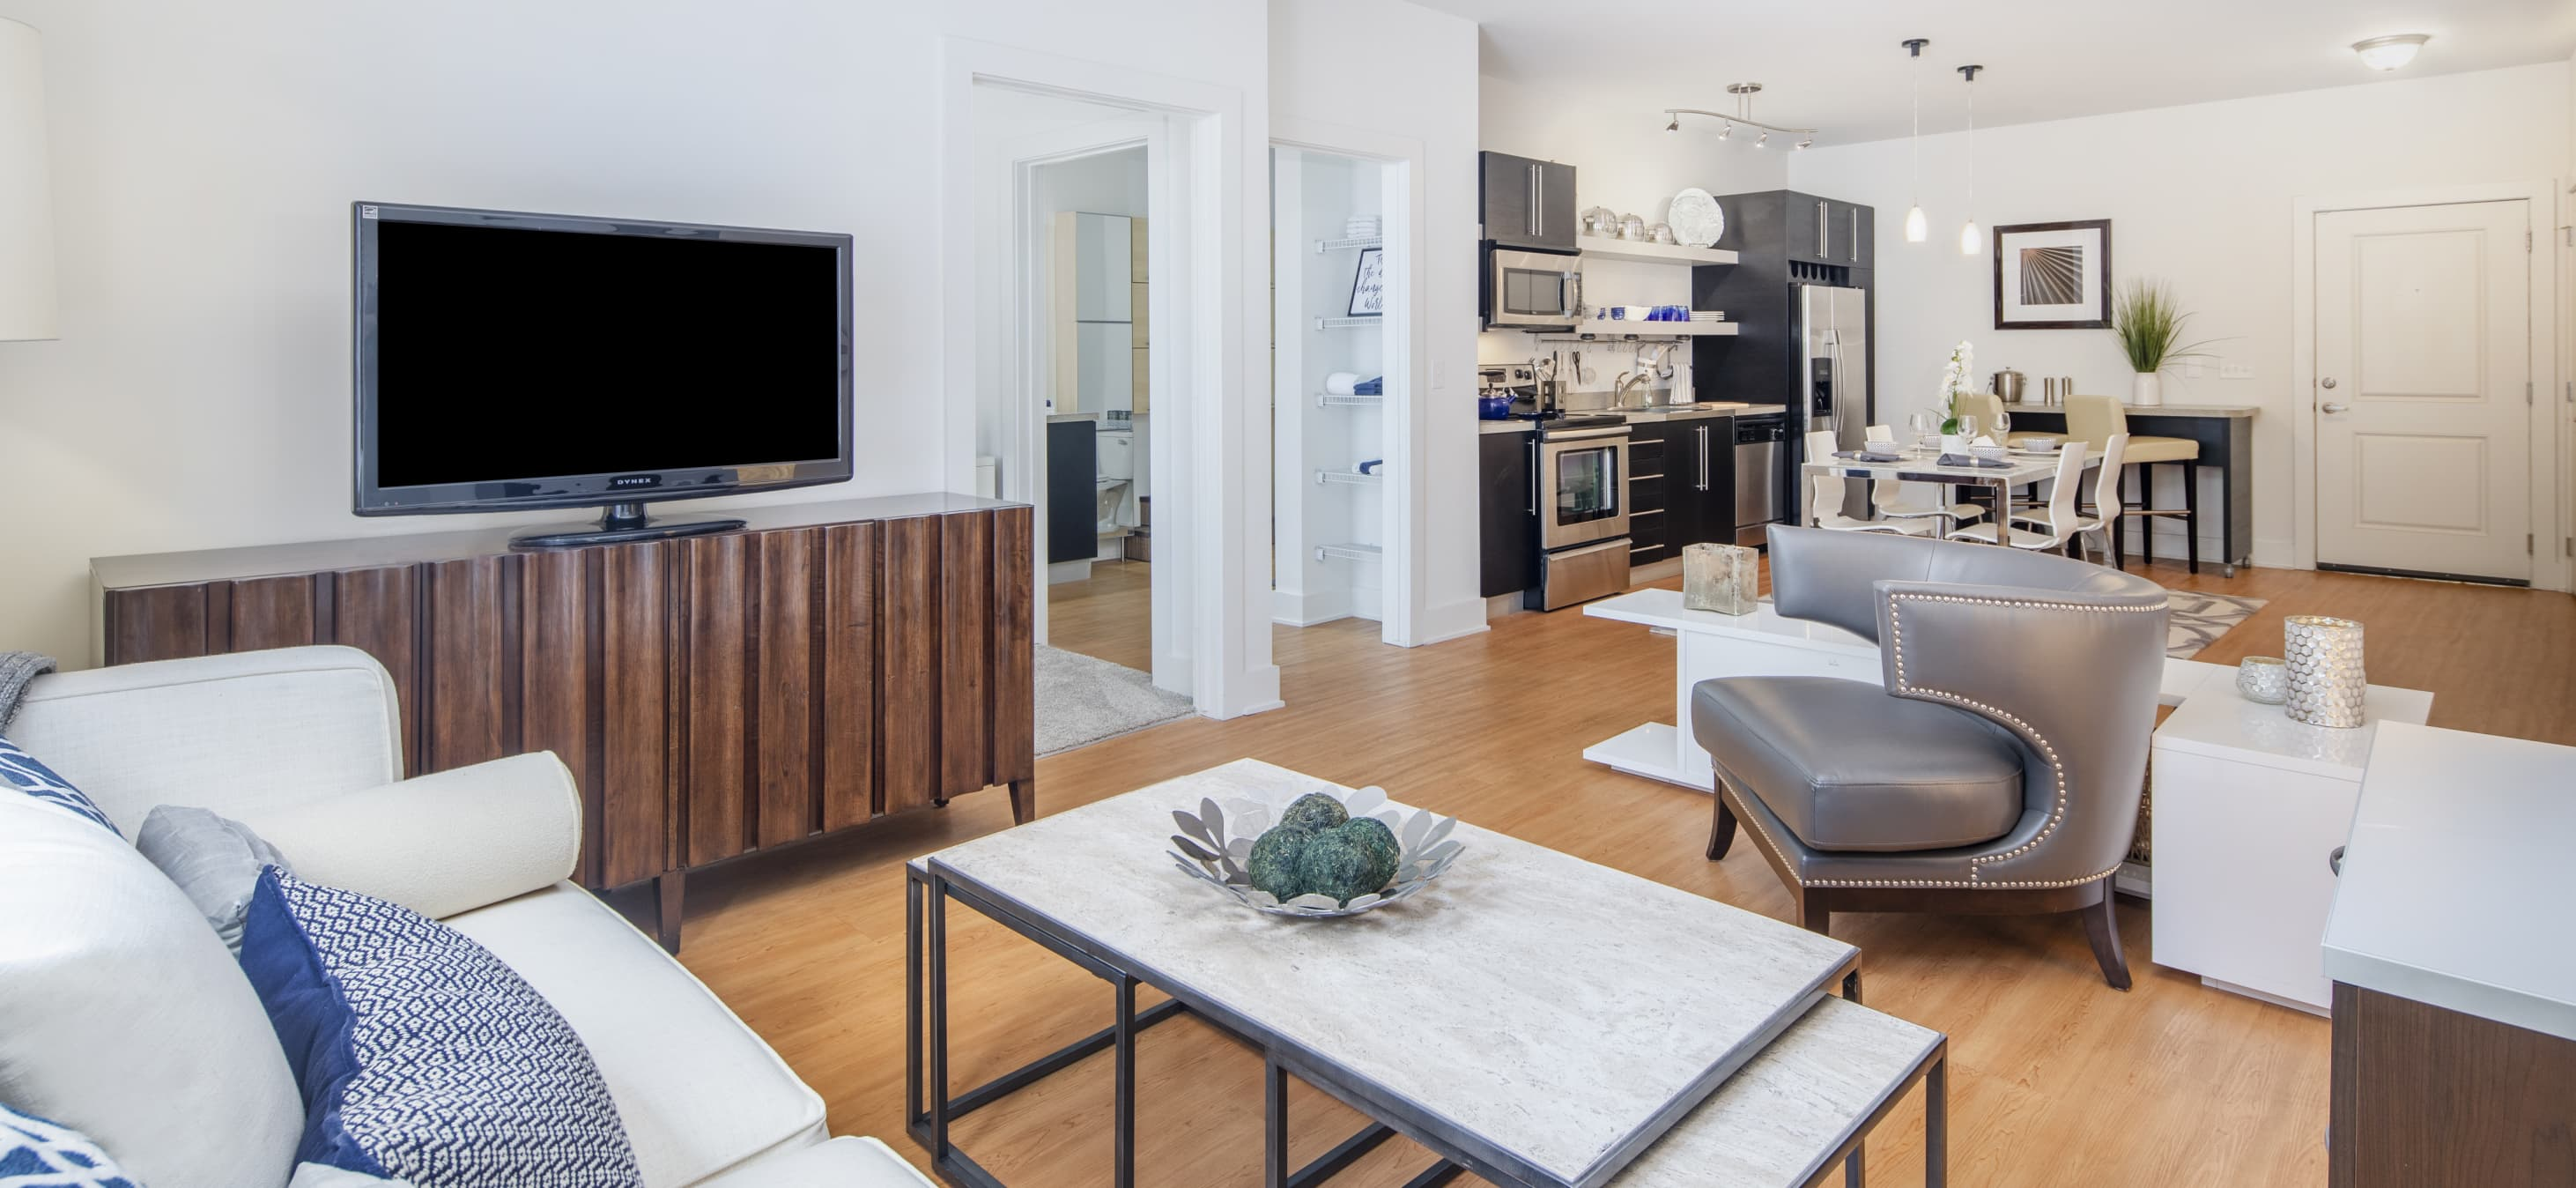 Maa South Line Luxury Apartments For Rent In Charlotte Nc Maa